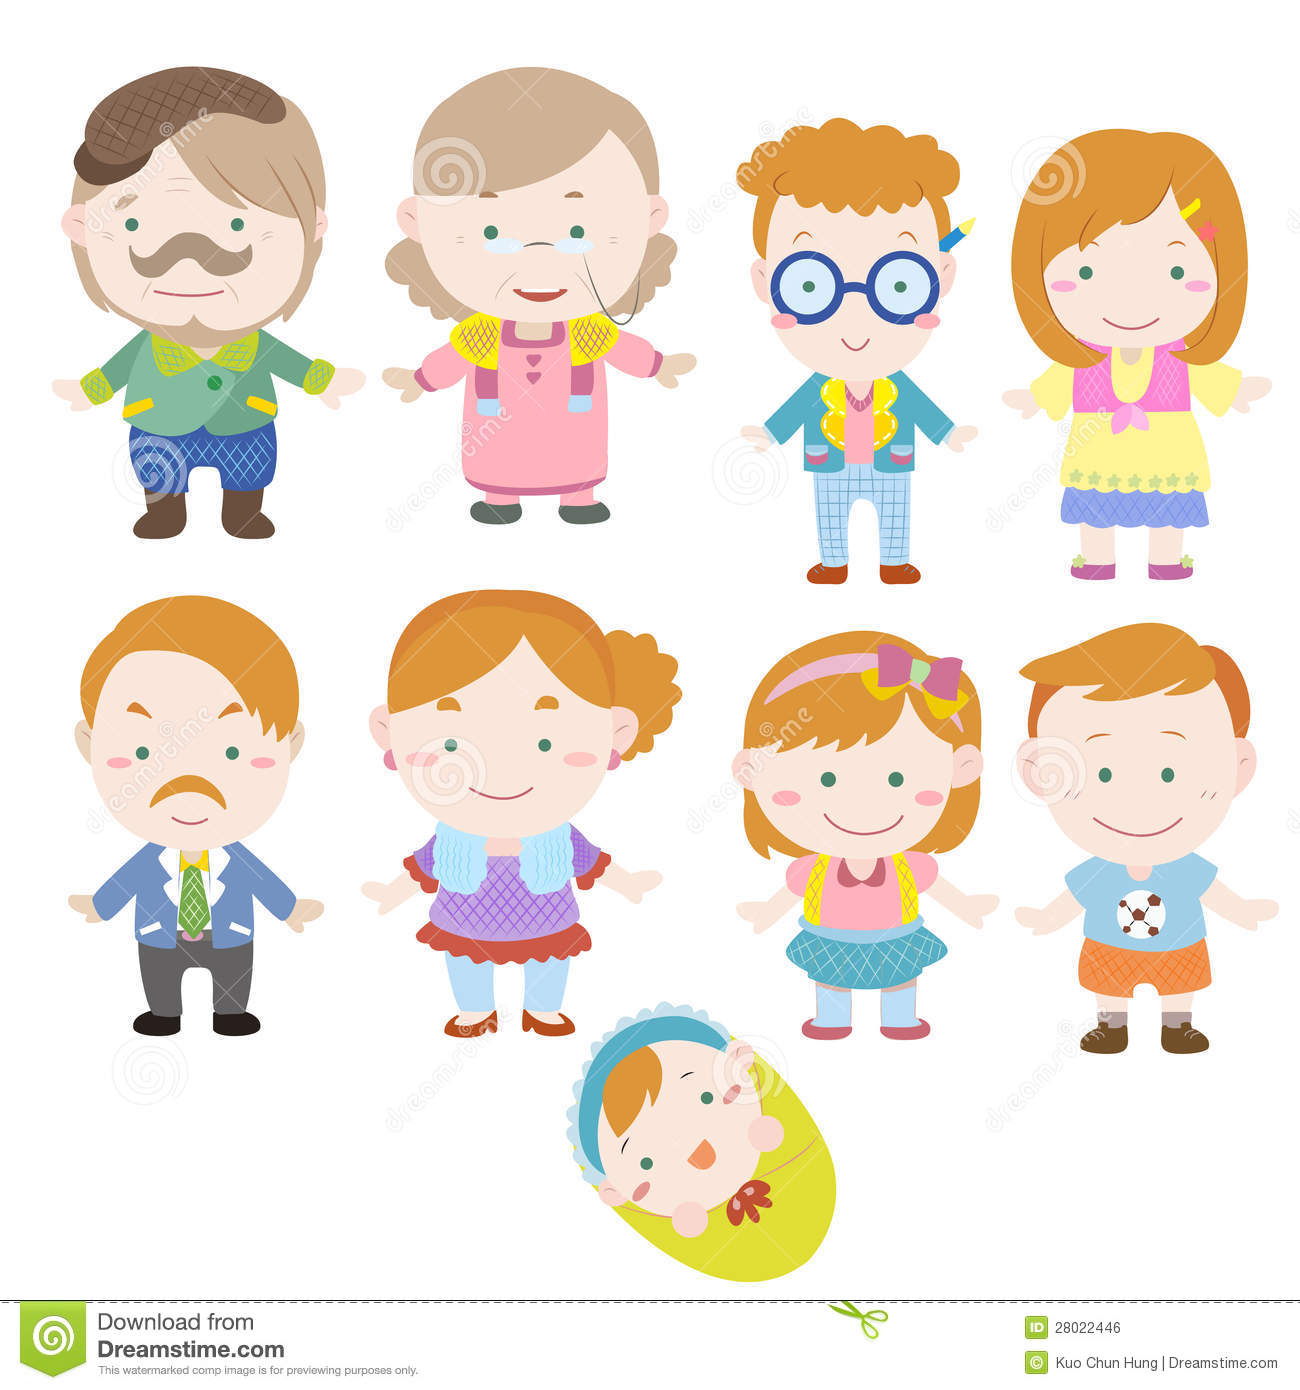 See family tree drawing stock video clips. Cartoon Family Icon Royalty Free Stock Image - Image: 28022446